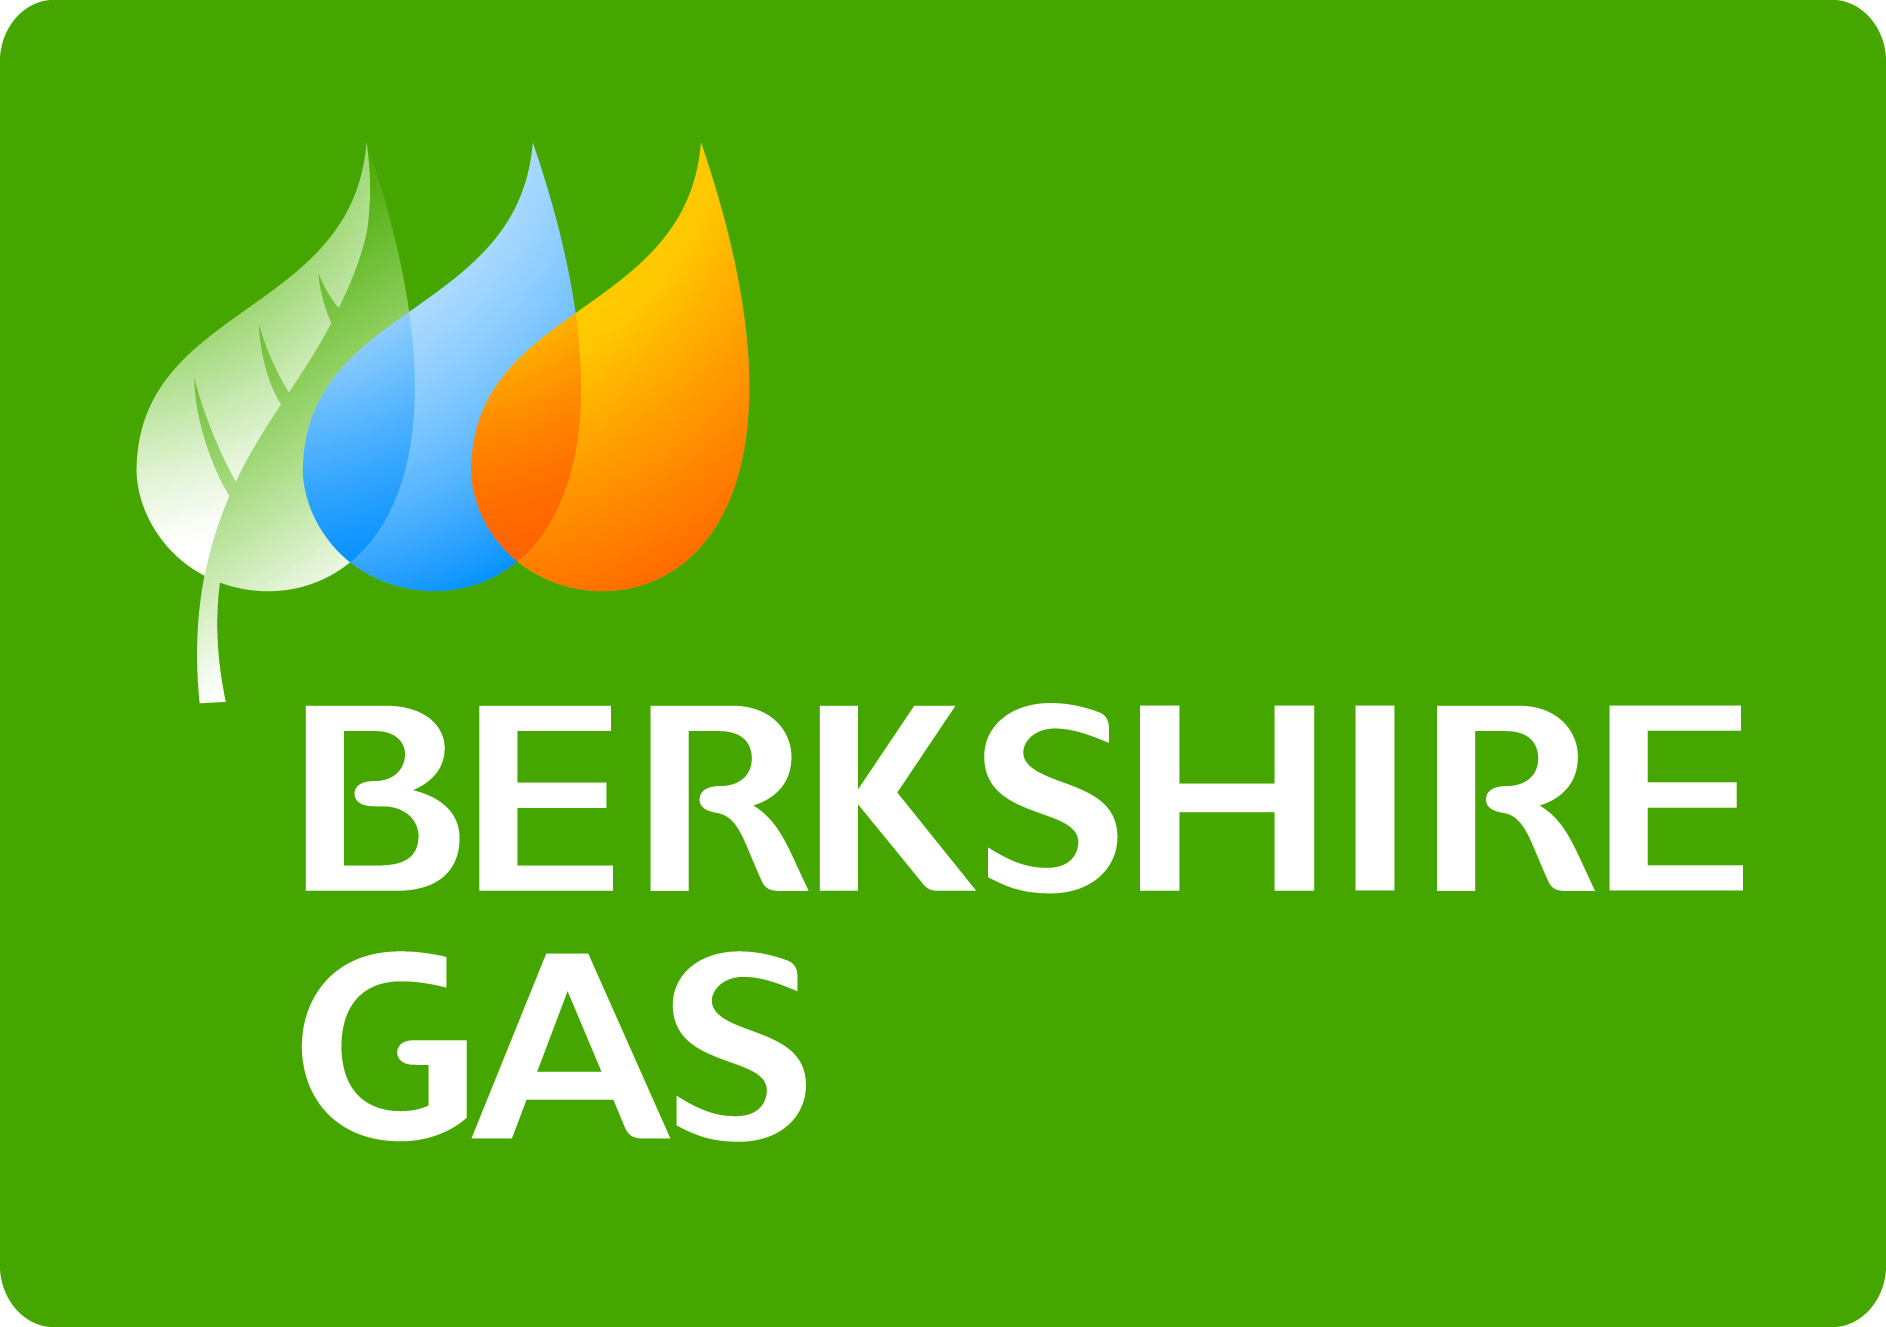 Berkshire Gas logo